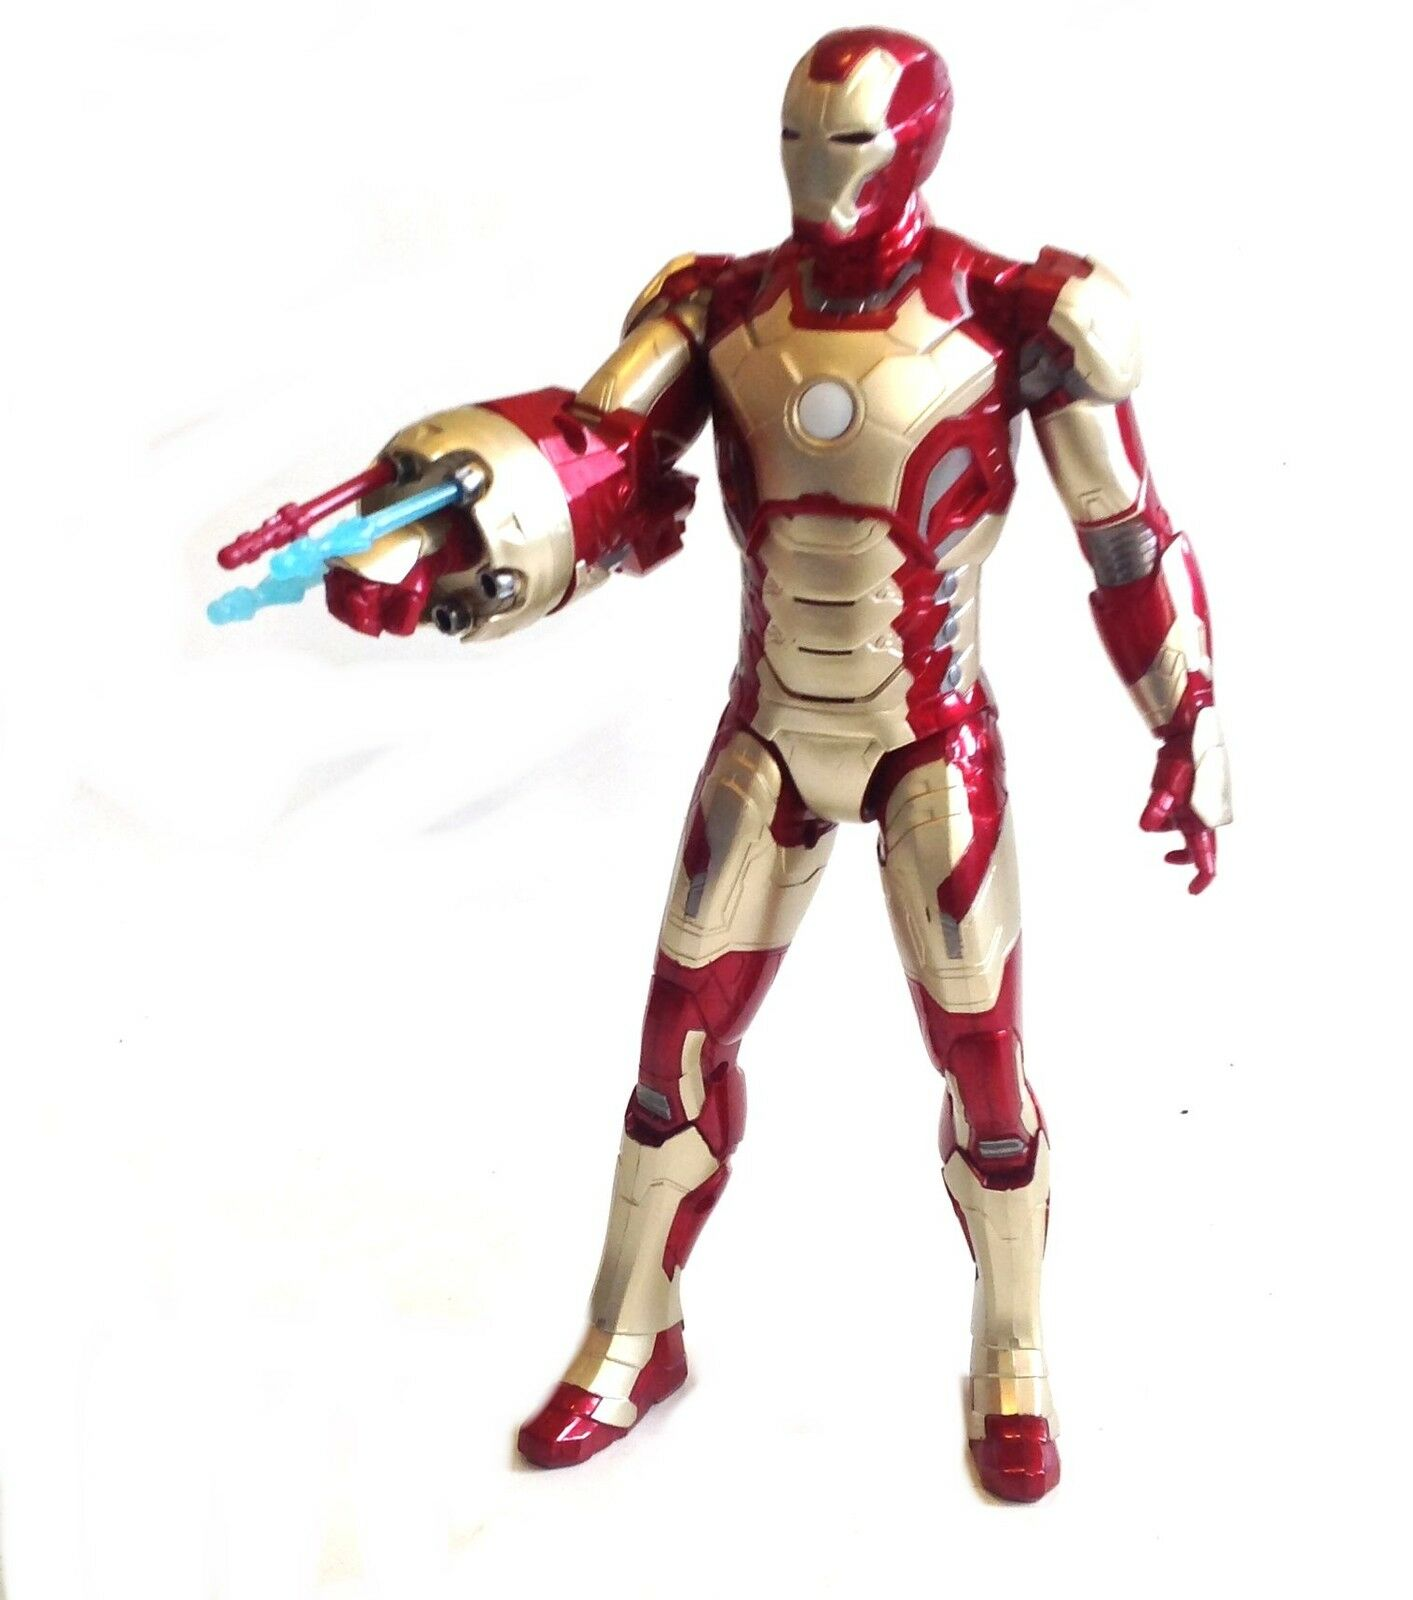 Marvel toys Massive 15  IRONMAN figure w  sound, light & missiles, avengers